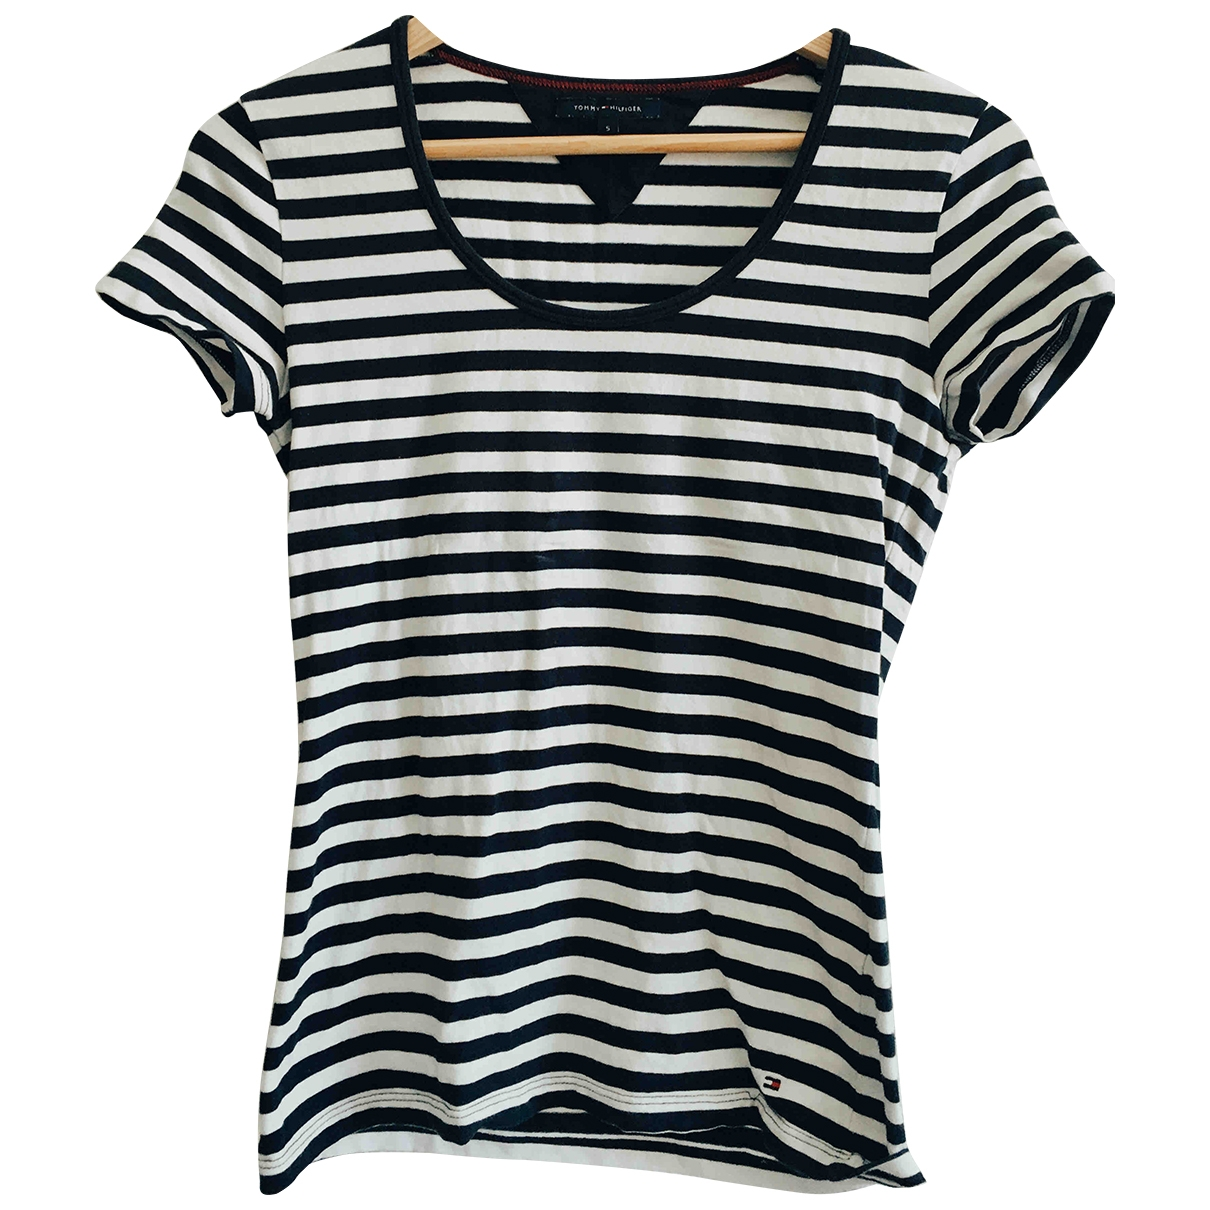 Tommy Hilfiger \N Cotton  top for Women S International